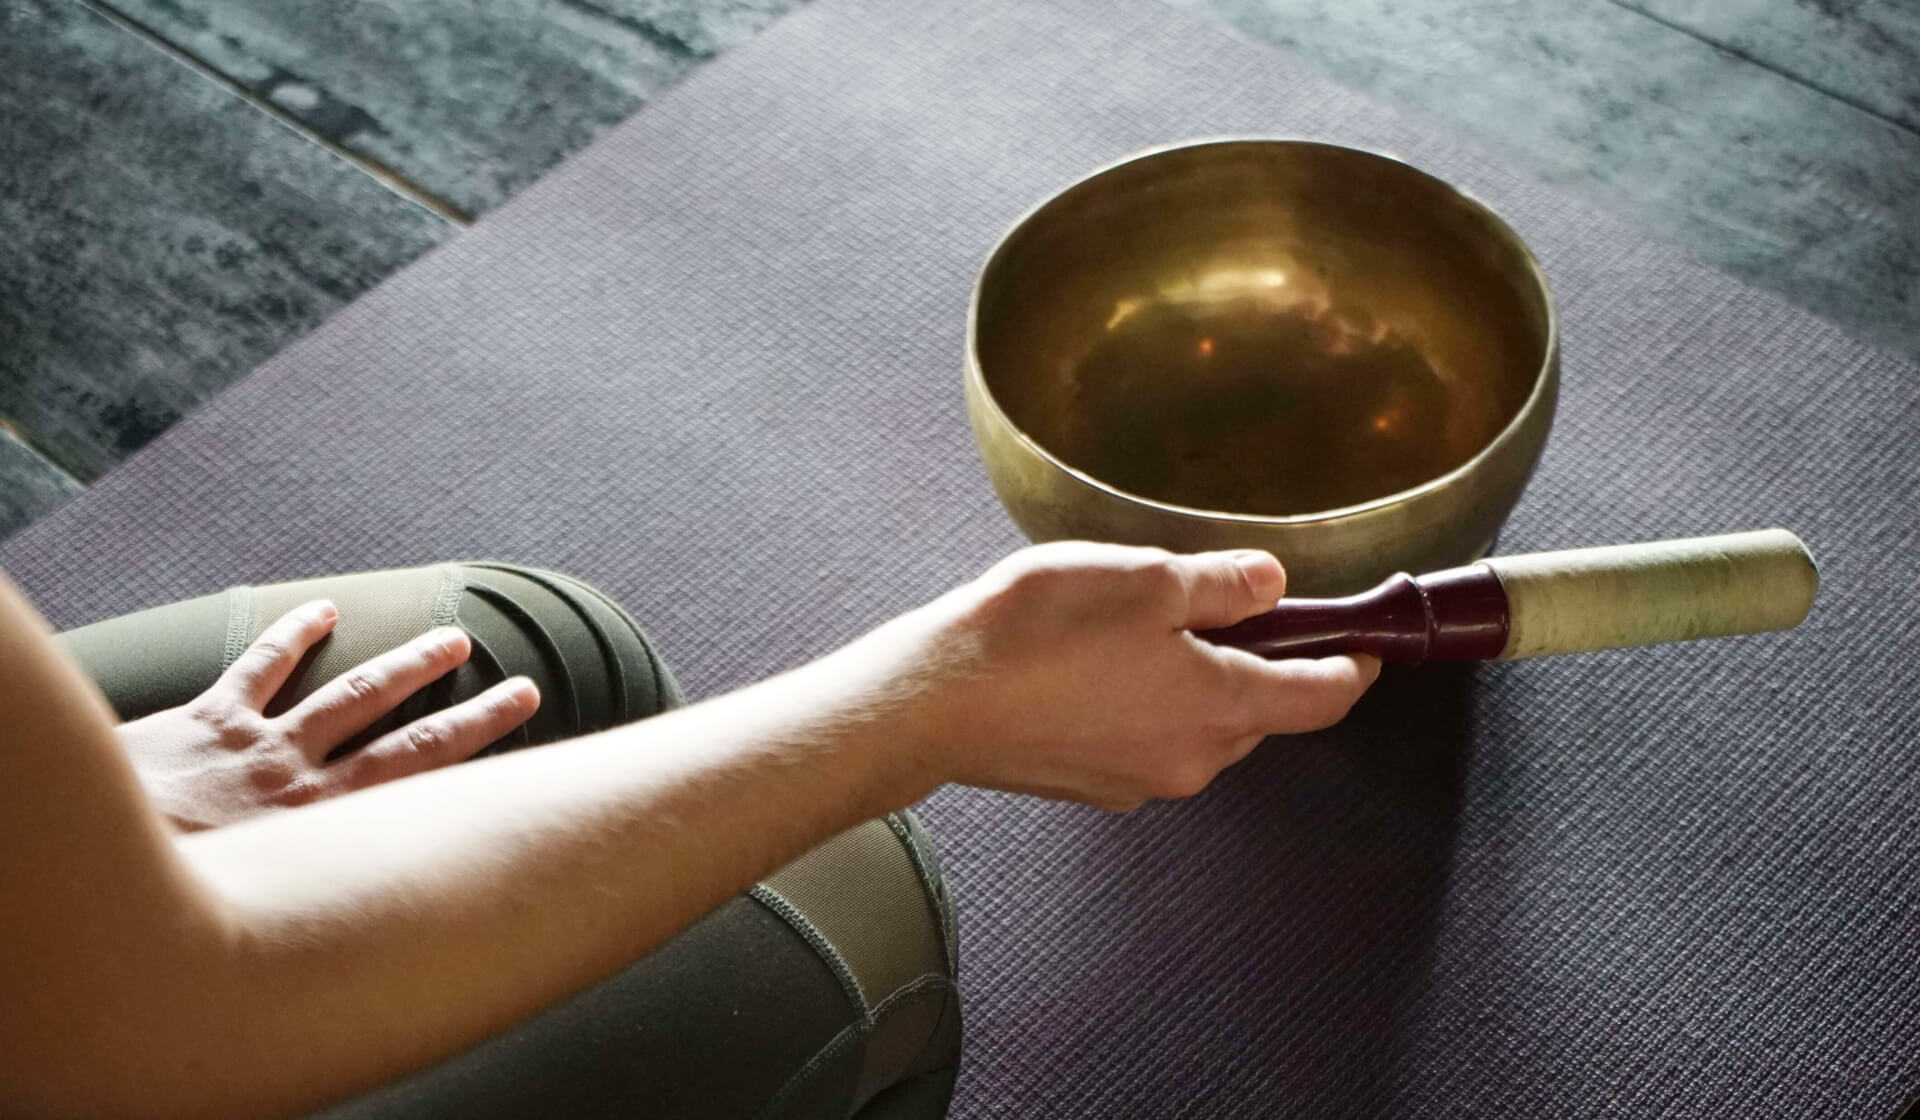 Close up of a yoga mat with a Tibetan singing bowl on it and a yoga teacher's hand striking the singing bowl to make sound